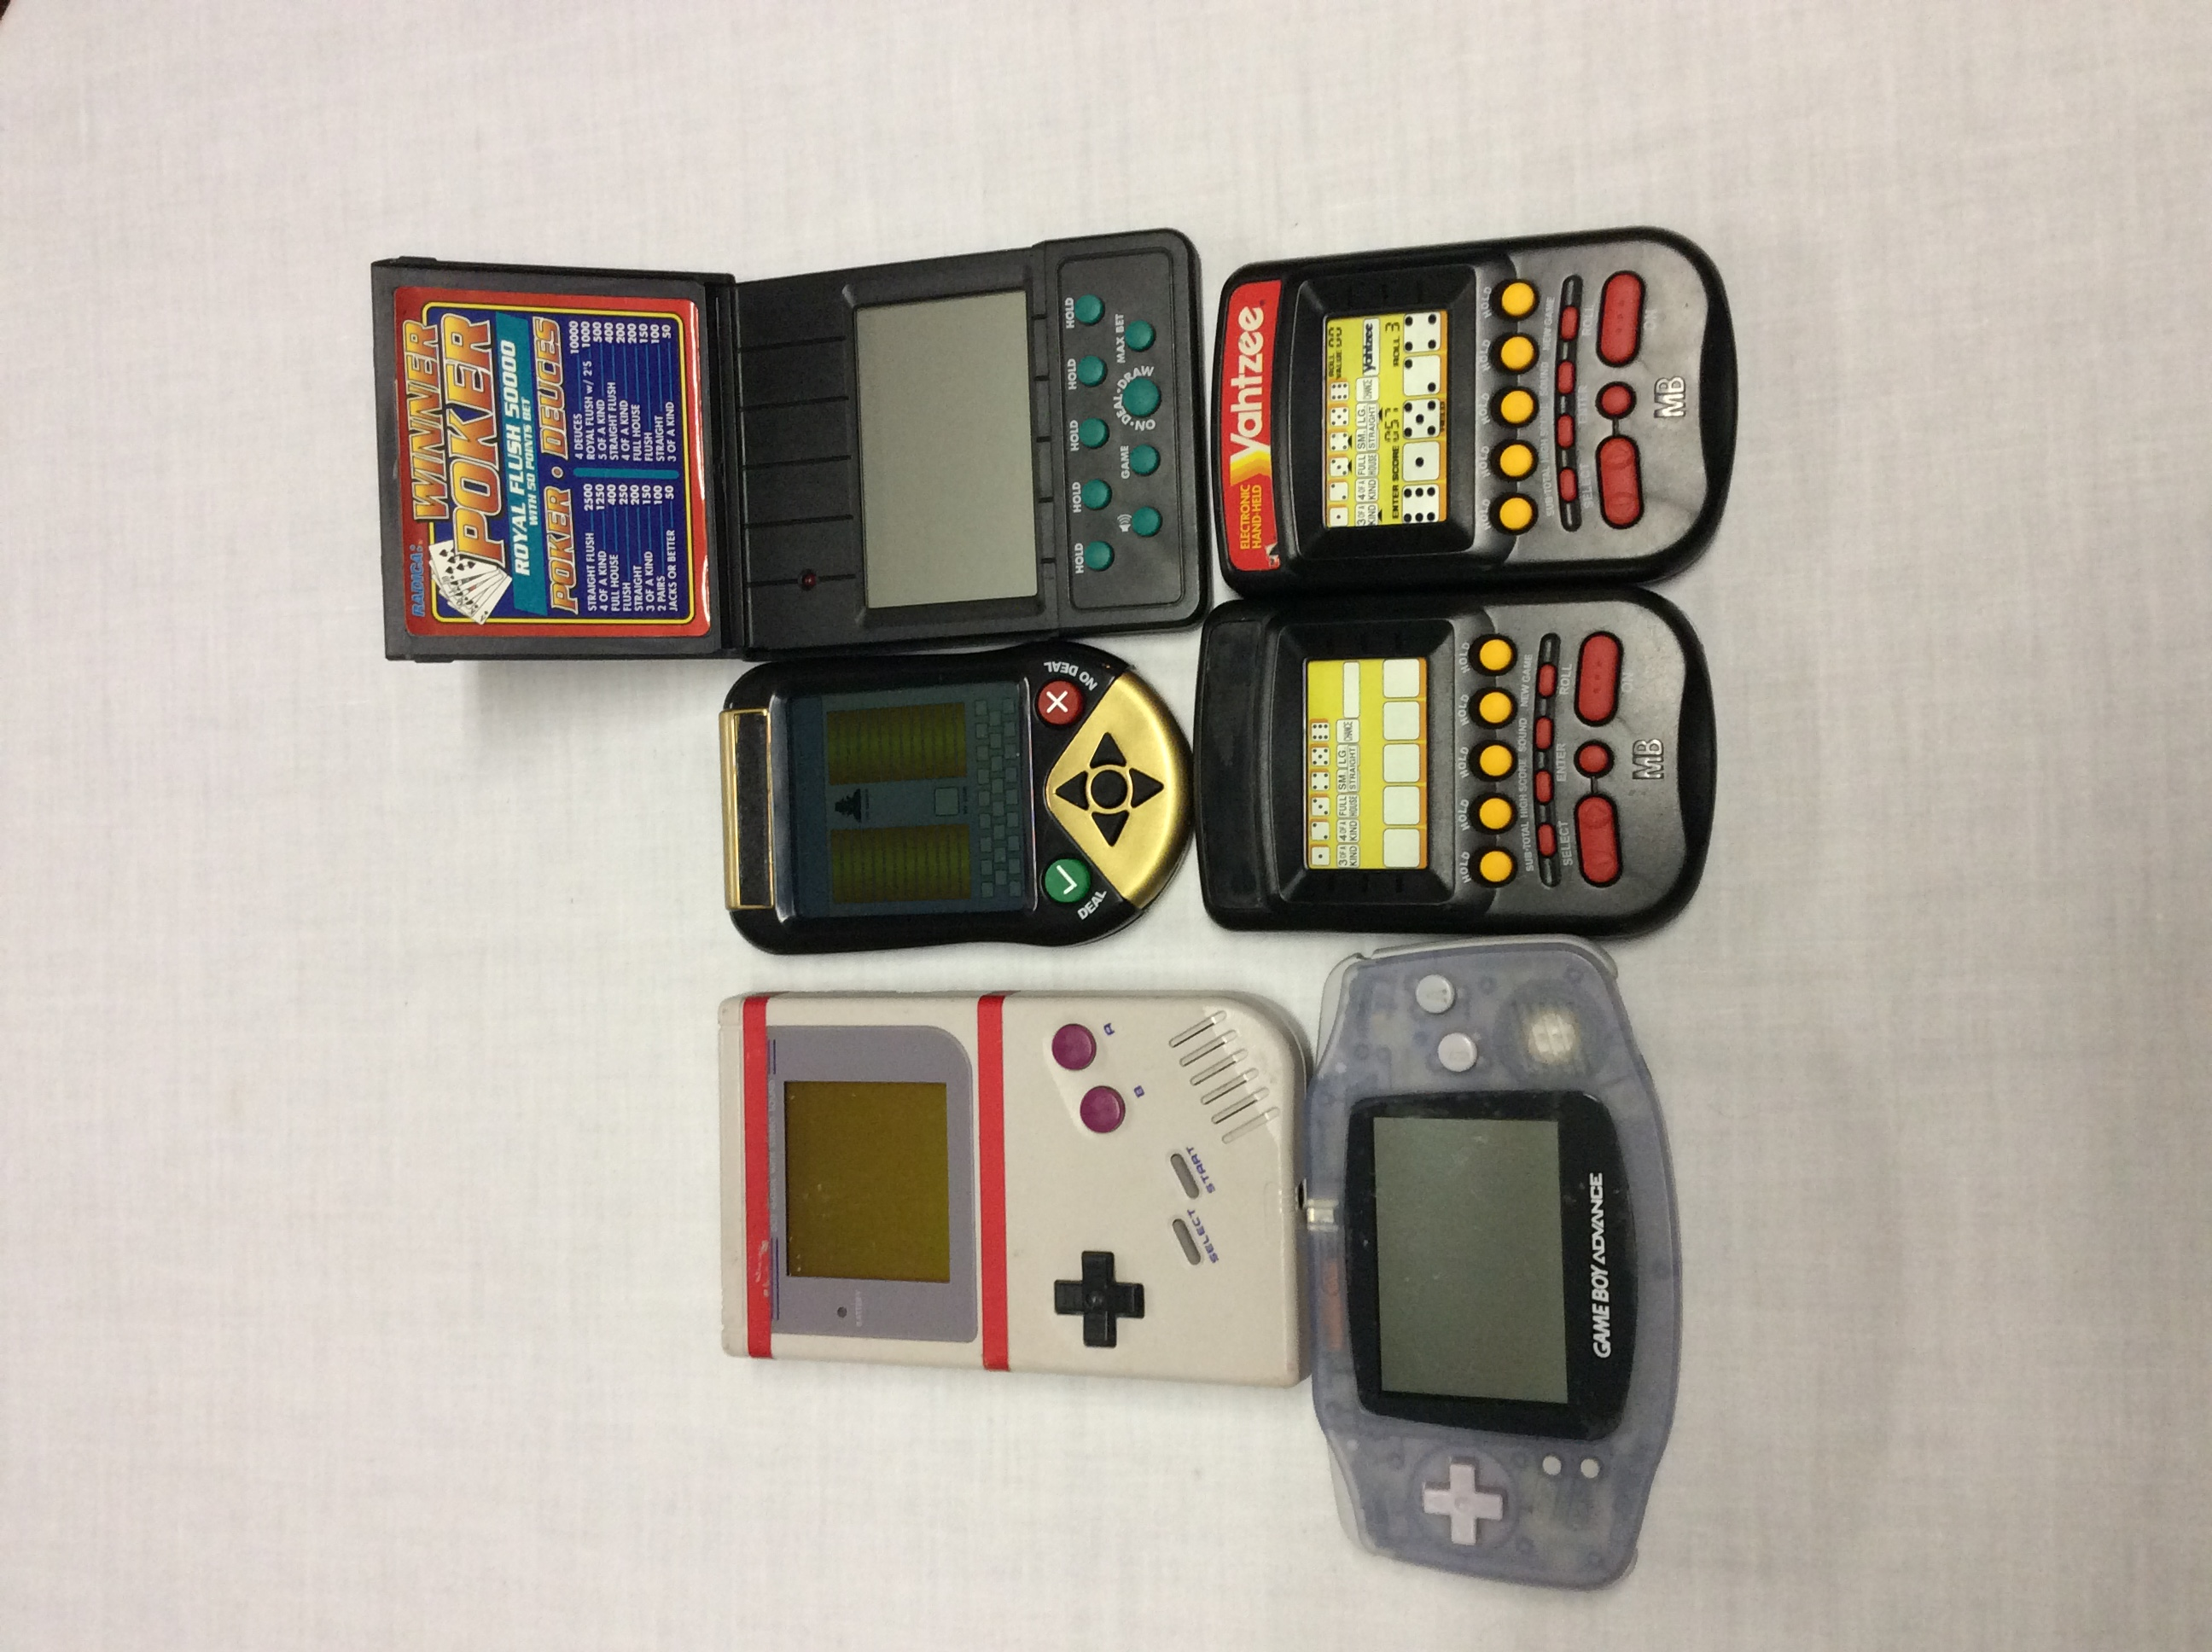 Handheld video games consoles